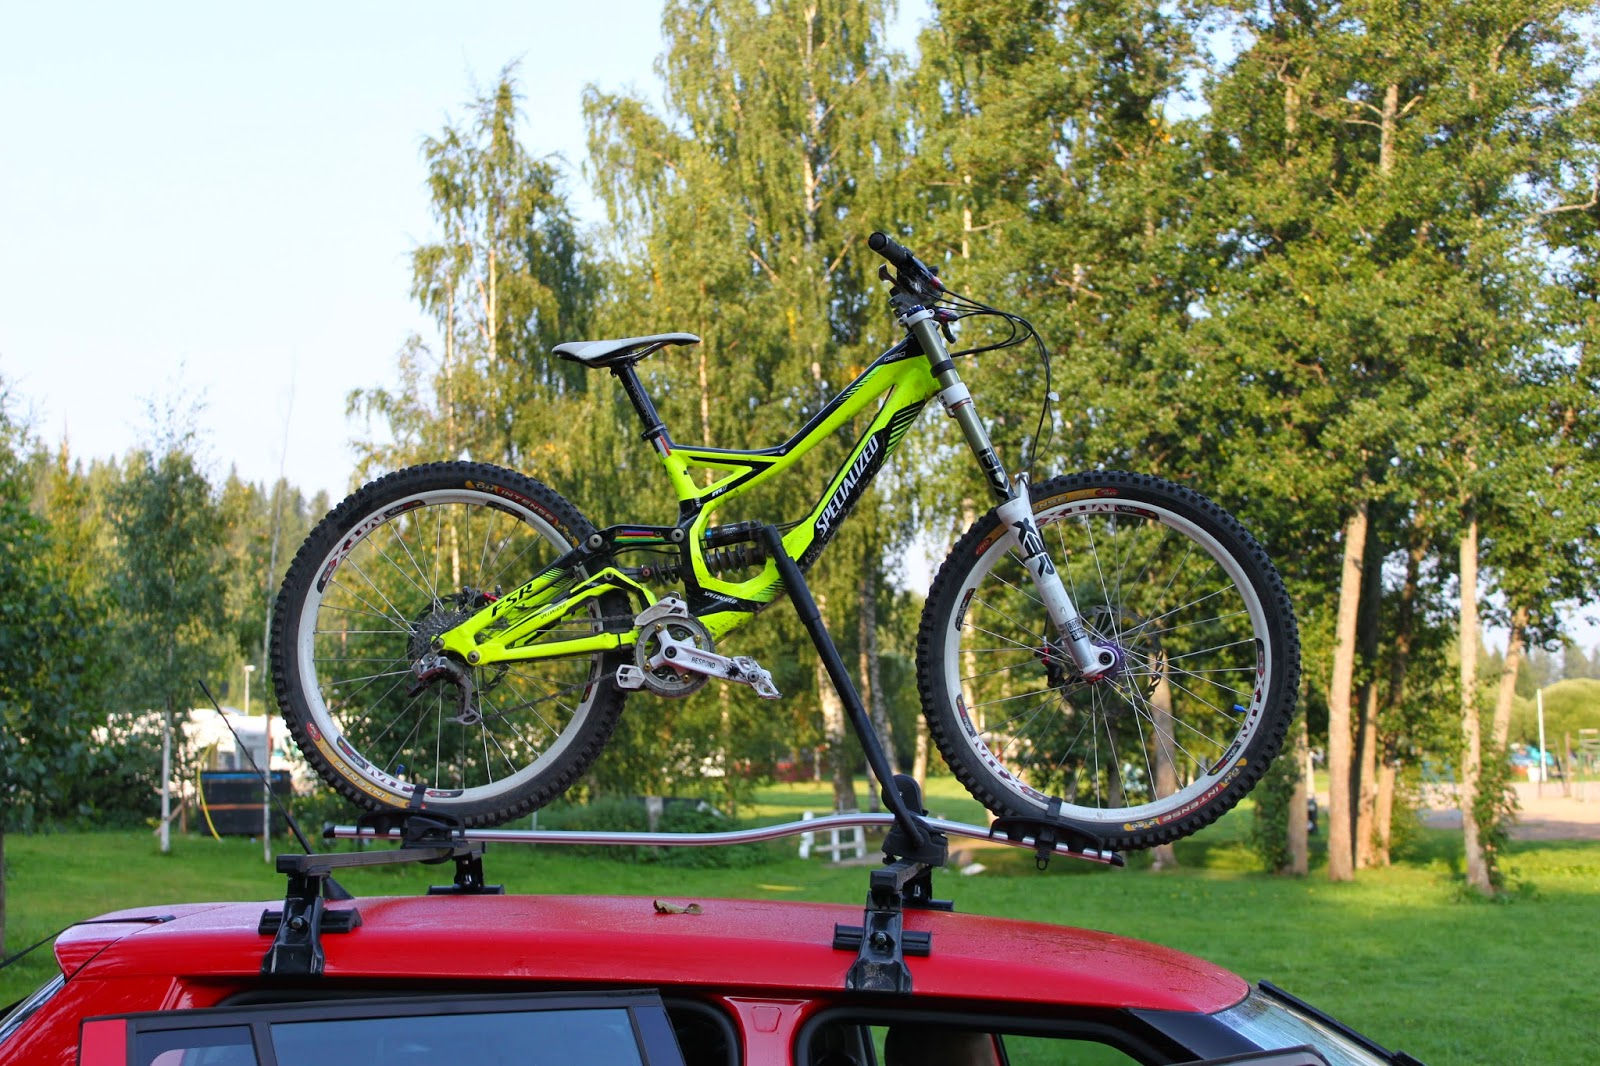 van 39 s mountain bike thule proride 951 review. Black Bedroom Furniture Sets. Home Design Ideas